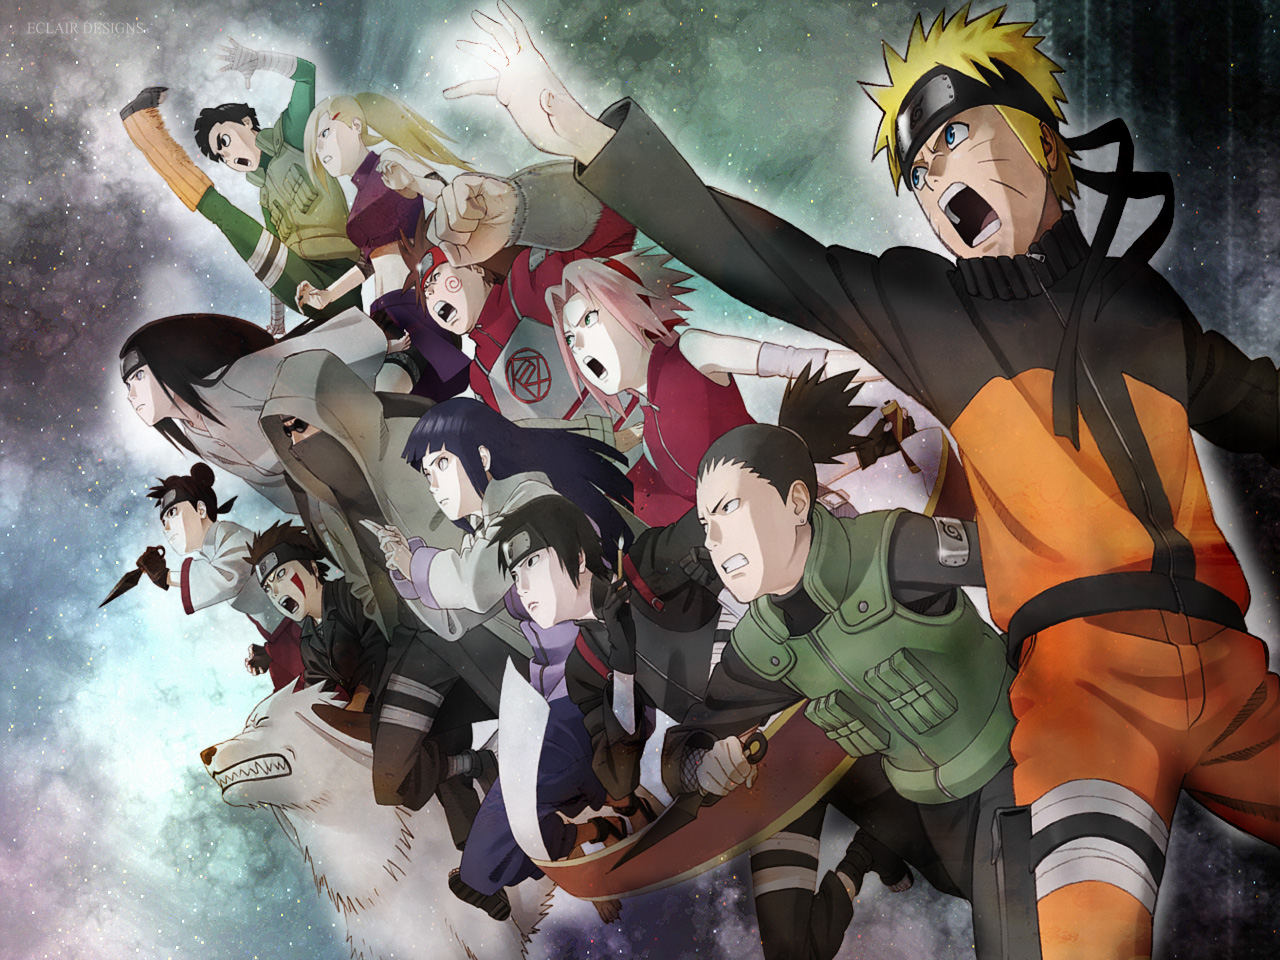 Download Naruto Shippuden 95 Sub Indonesia - rightdehol's diary